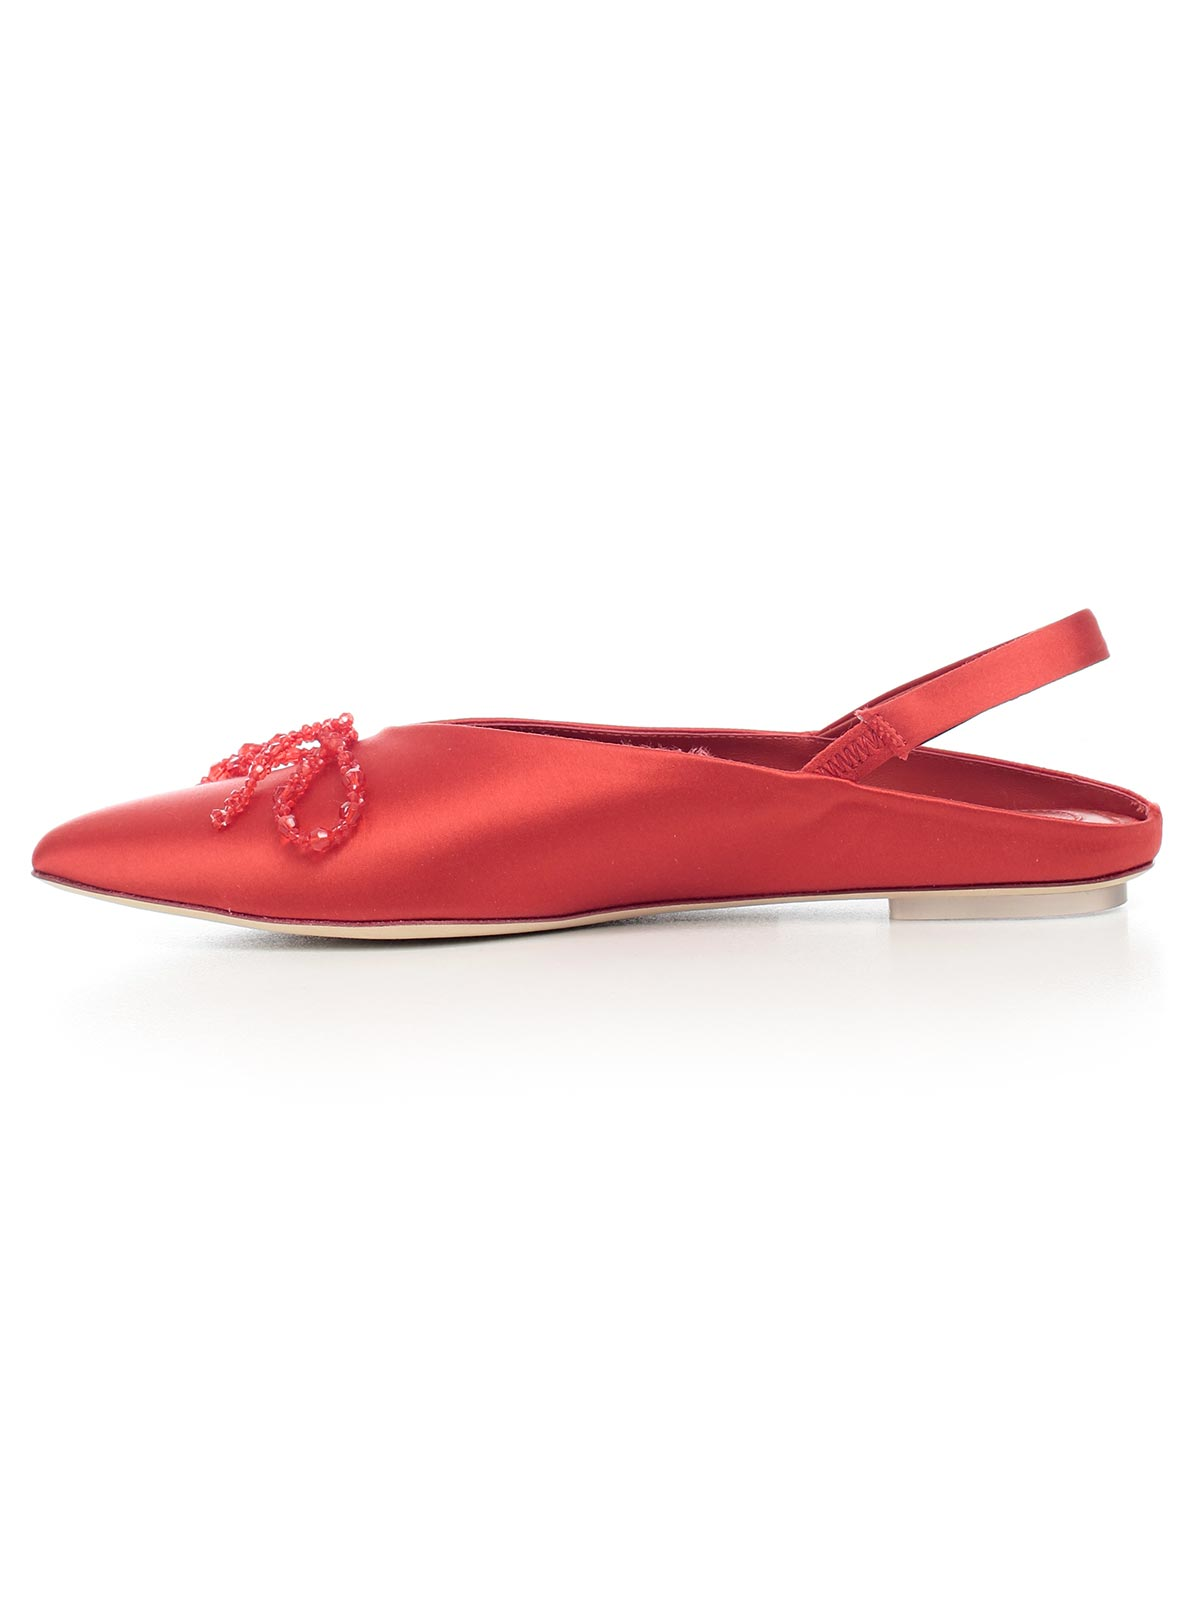 Picture of Simone Rocha Shoes